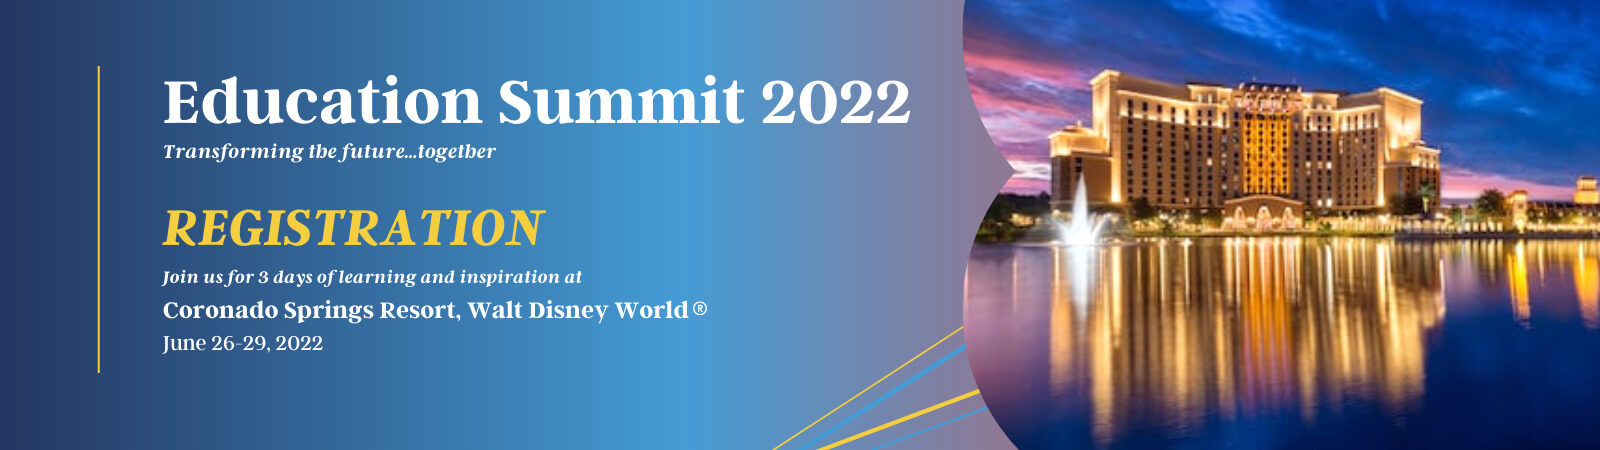 Banner featuring Coronado Springs Resort at Walt Disney World for the Pegasus Springs Education Collective Education Summit 2022